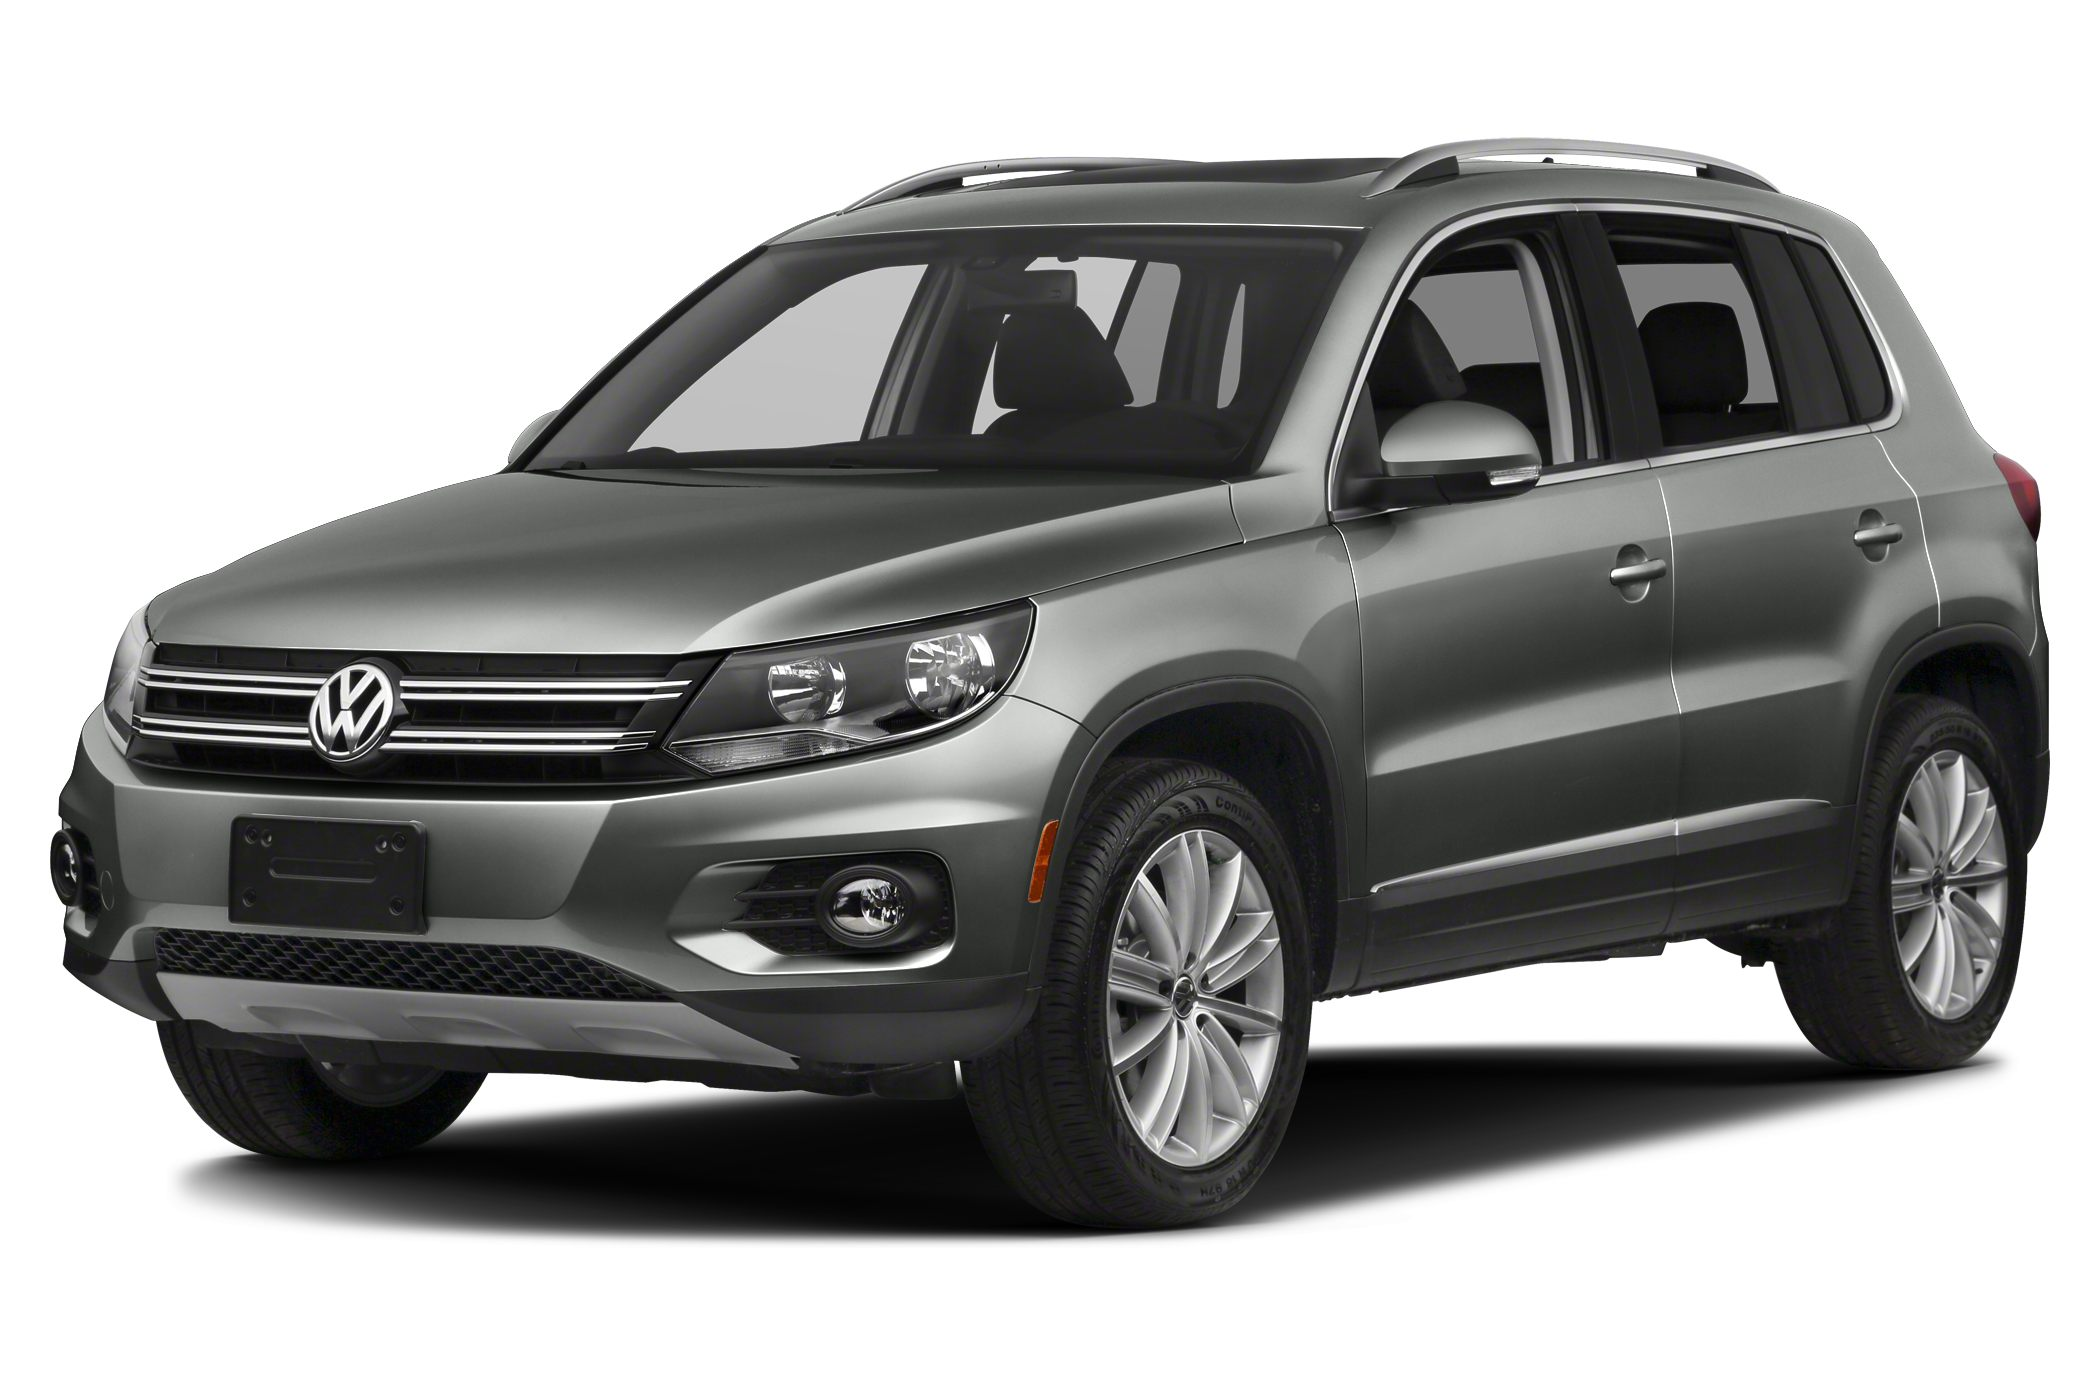 2014 Volkswagen Tiguan SE WE SELL OUR VEHICLES AT WHOLESALE PRICES AND STAND BEHIND OUR CARS